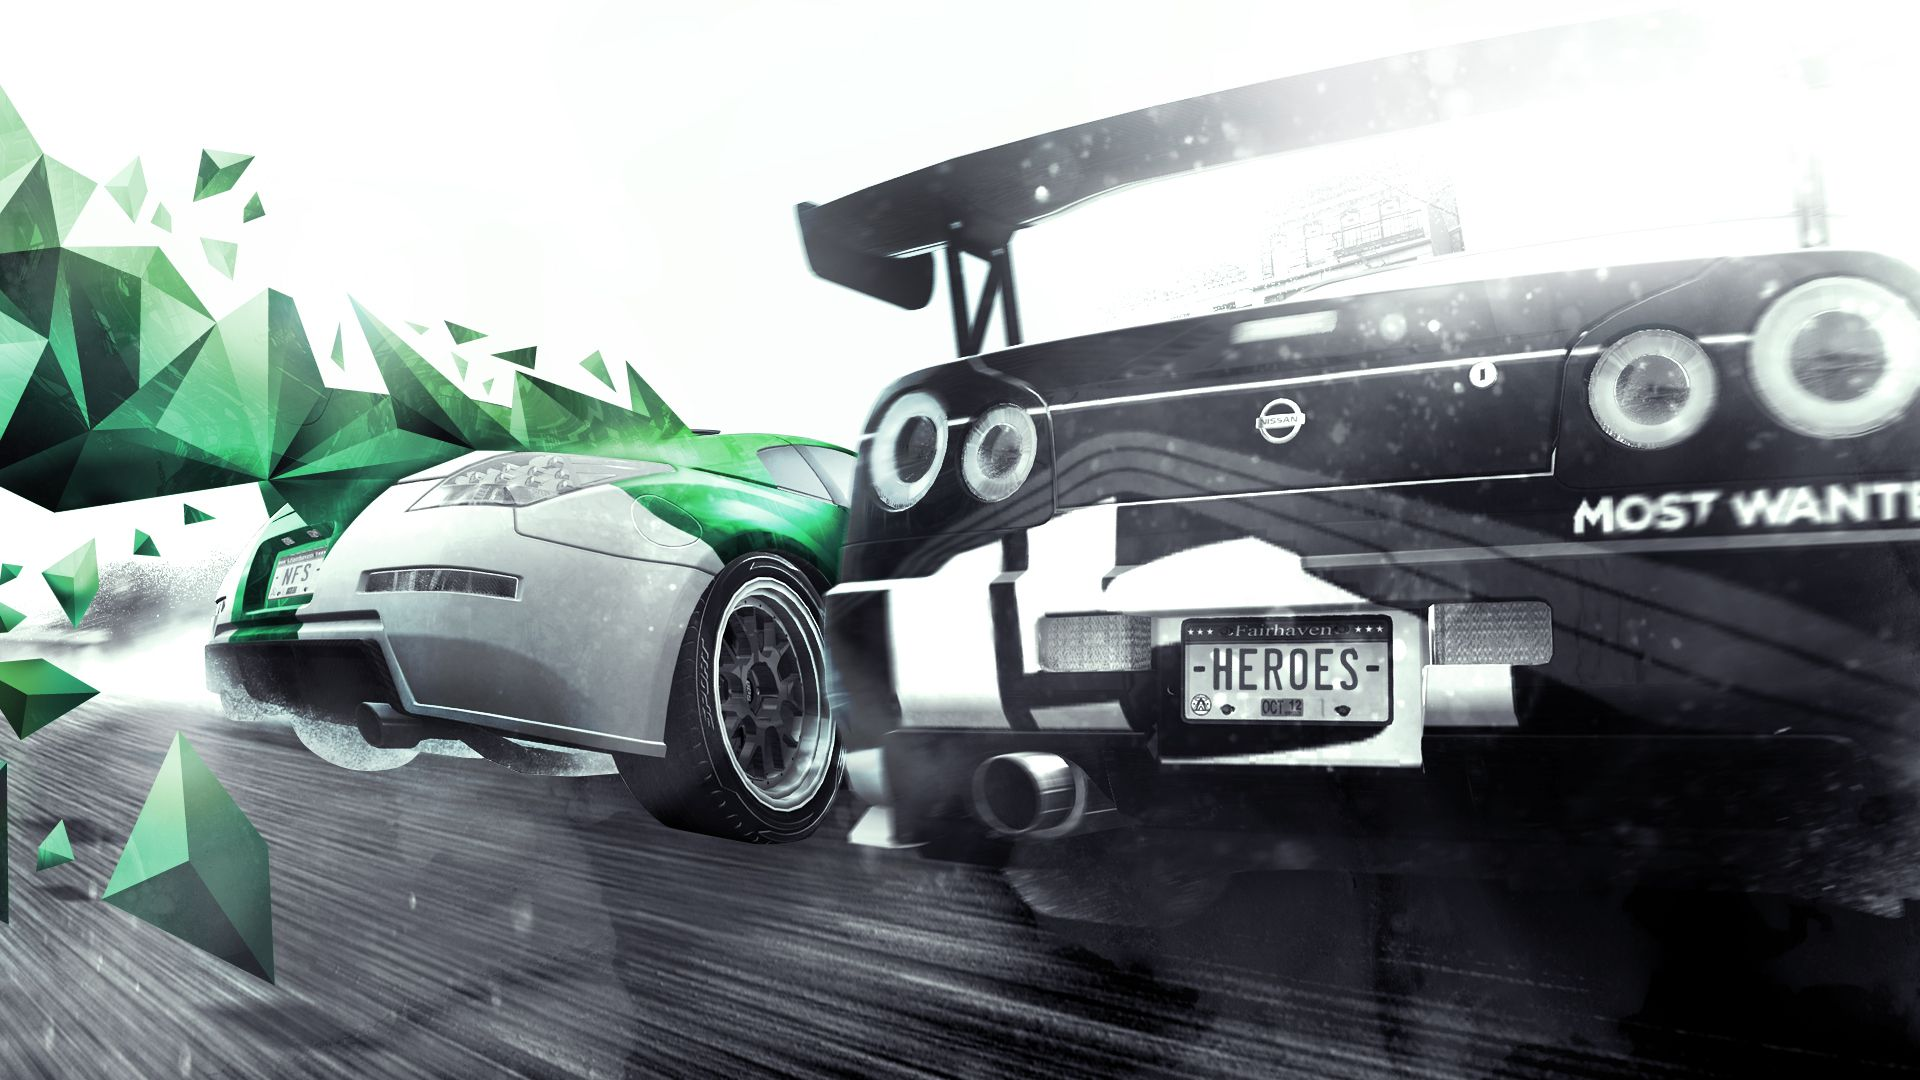 need-for-speed-most-wanted-packs-dlc_pdp_1920x1080_en_WW Fabulous Need for Speed Most Wanted 2012 Porsche 918 Spyder Concept Location Cars Trend